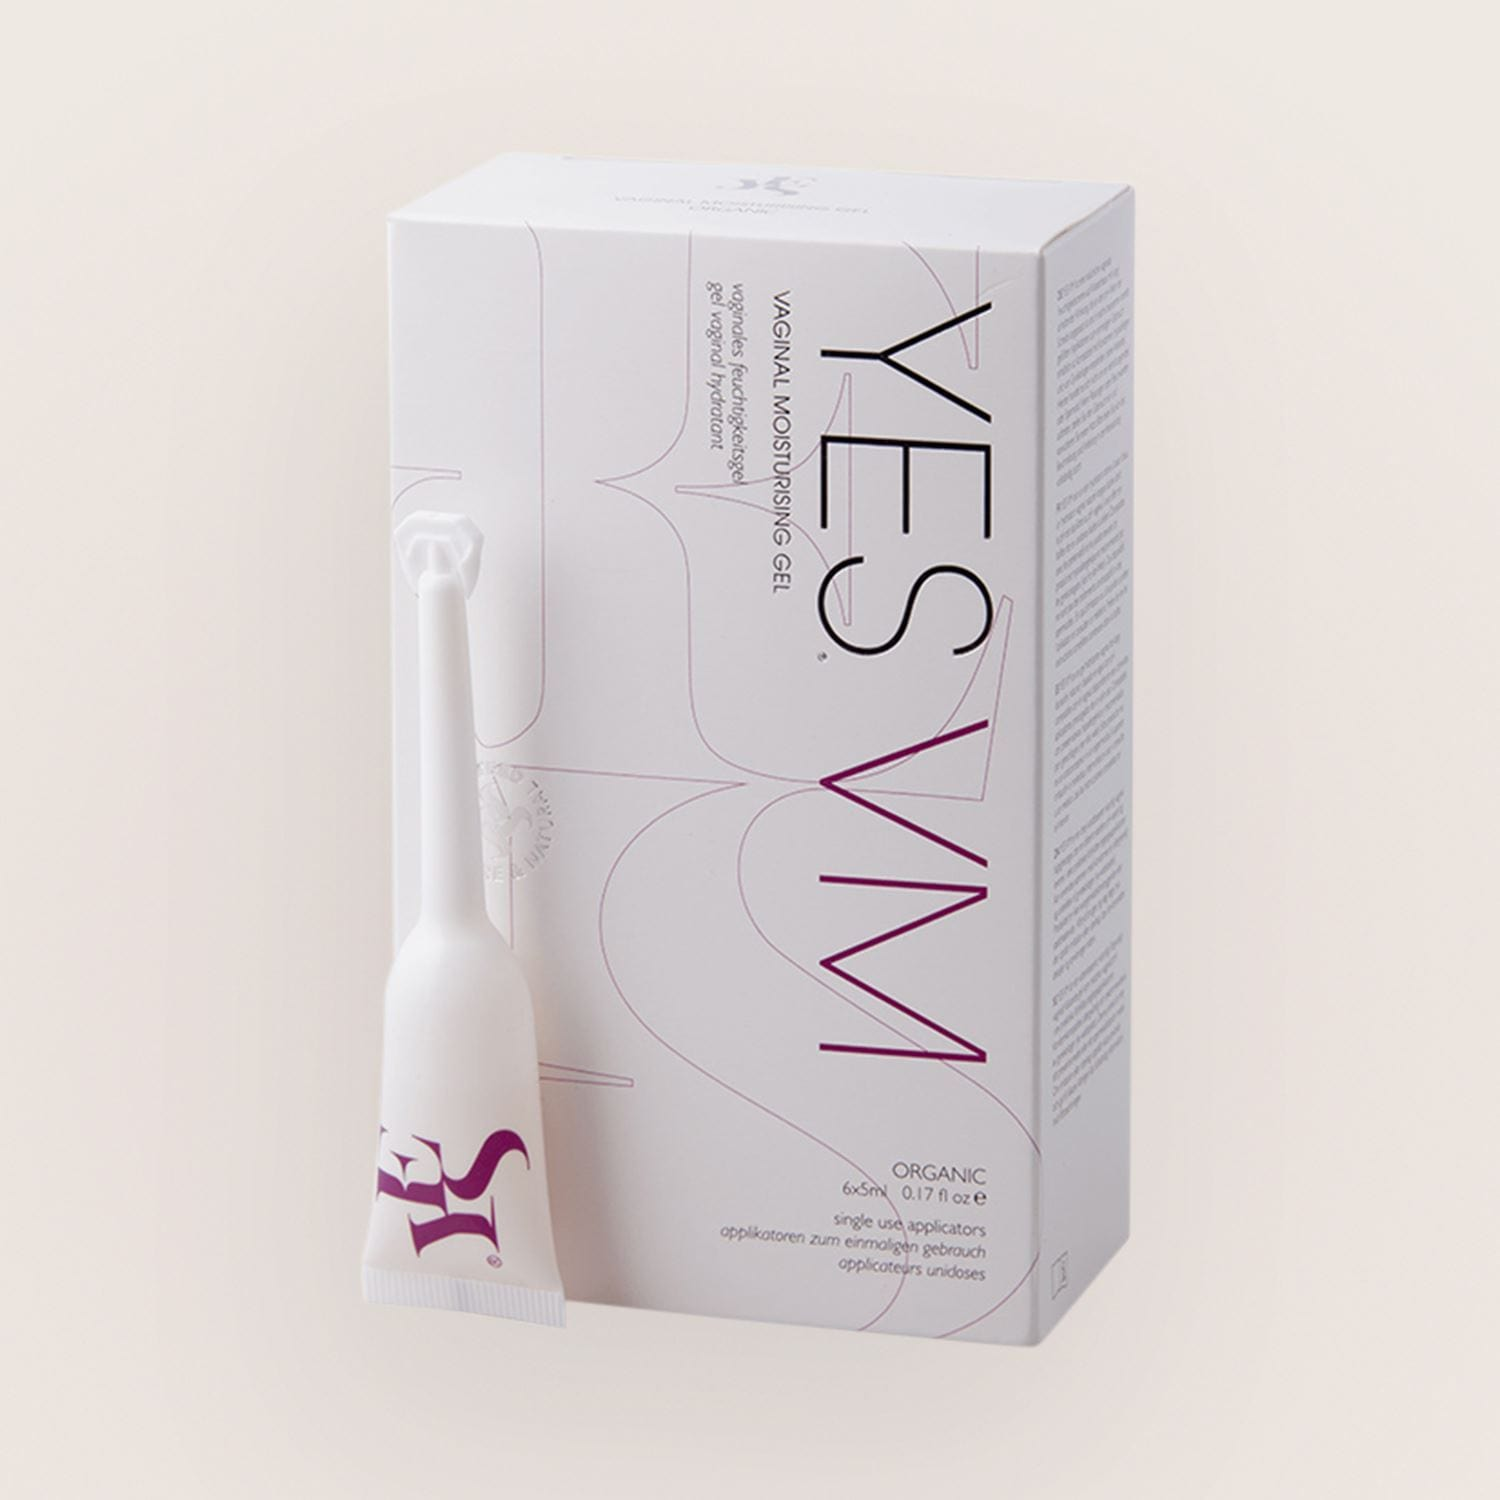 YES Water-Based Vaginal Moisturising Gel Applicators 6 x 5ml